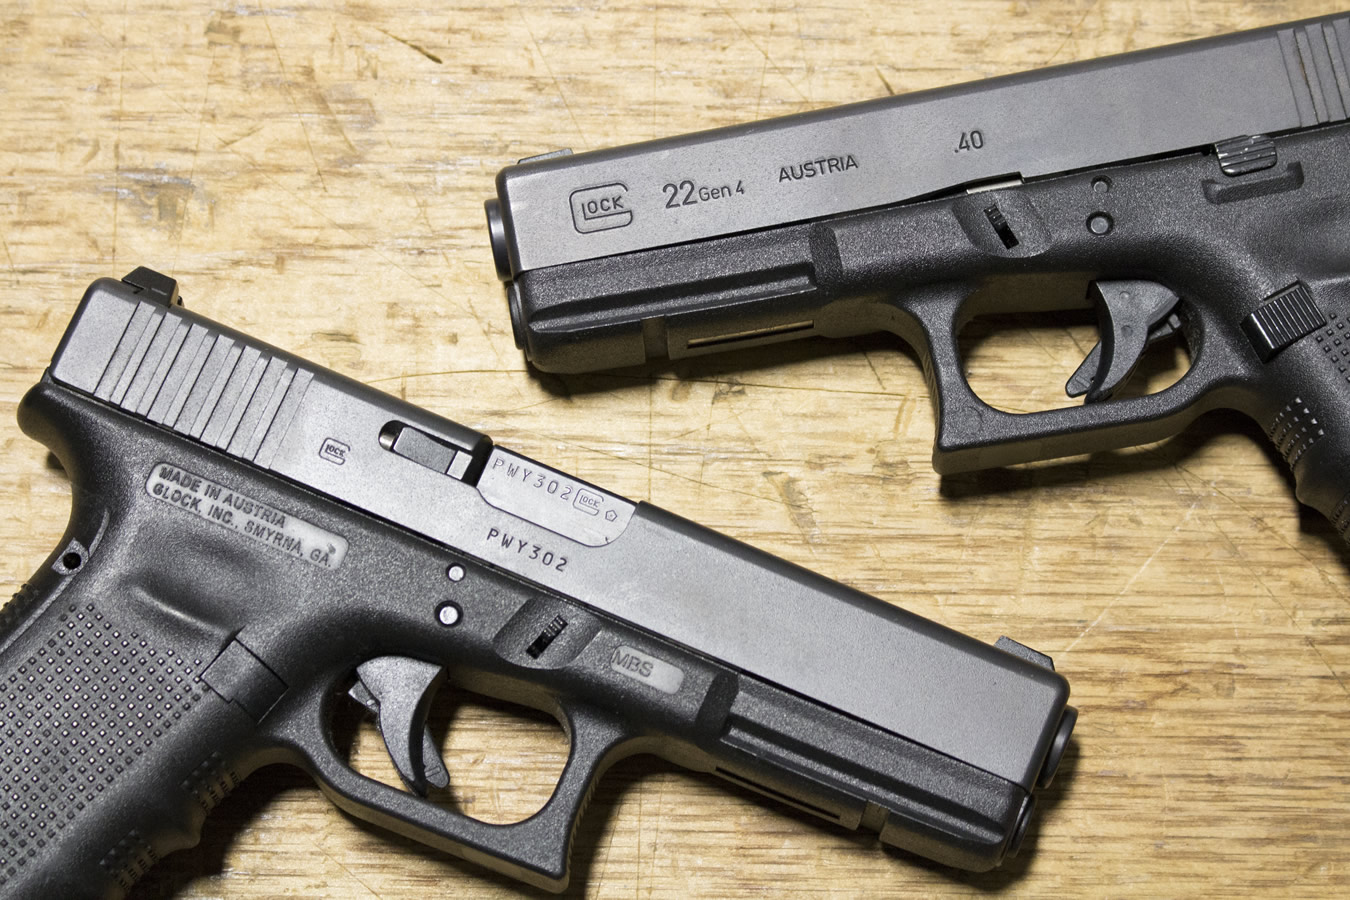 Glock 22 Gen4 40 S&W Police Trades (Very Good Condition ...